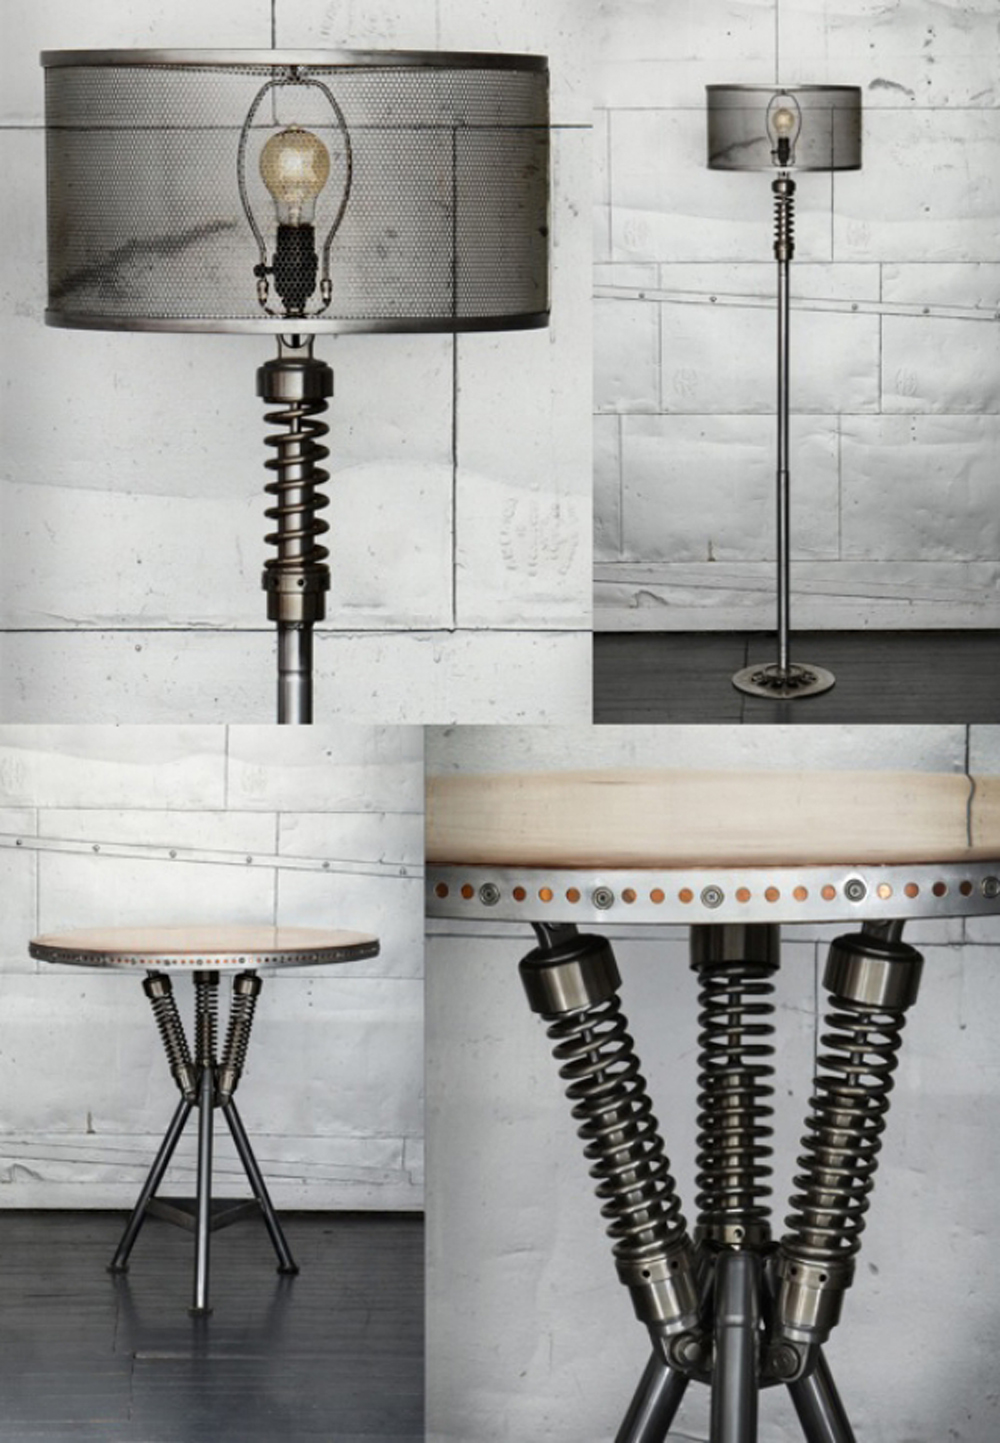 industrial chic wohnaccessoires stehlampe tischleuchte m belideen schrott aequivalere. Black Bedroom Furniture Sets. Home Design Ideas